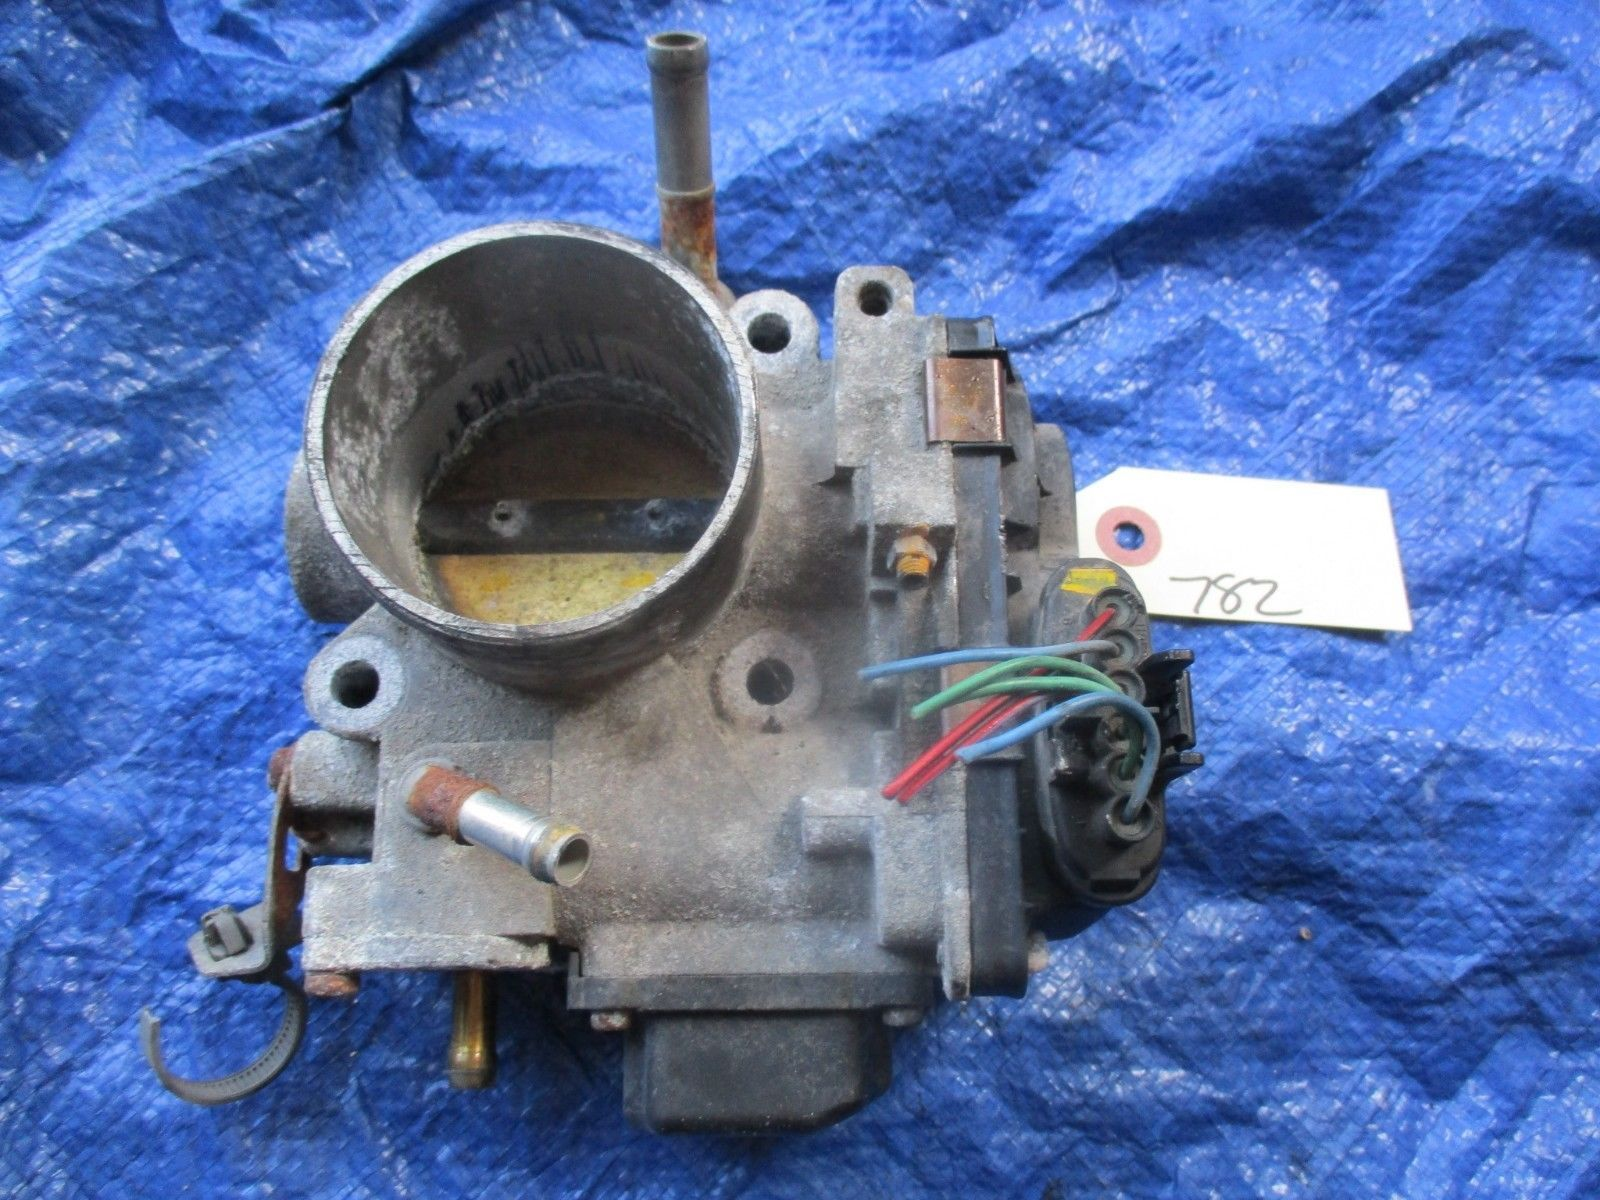 2004 Acura TSX K24A2 throttle body assembly OEM engine motor K24A base 782 GMB1A